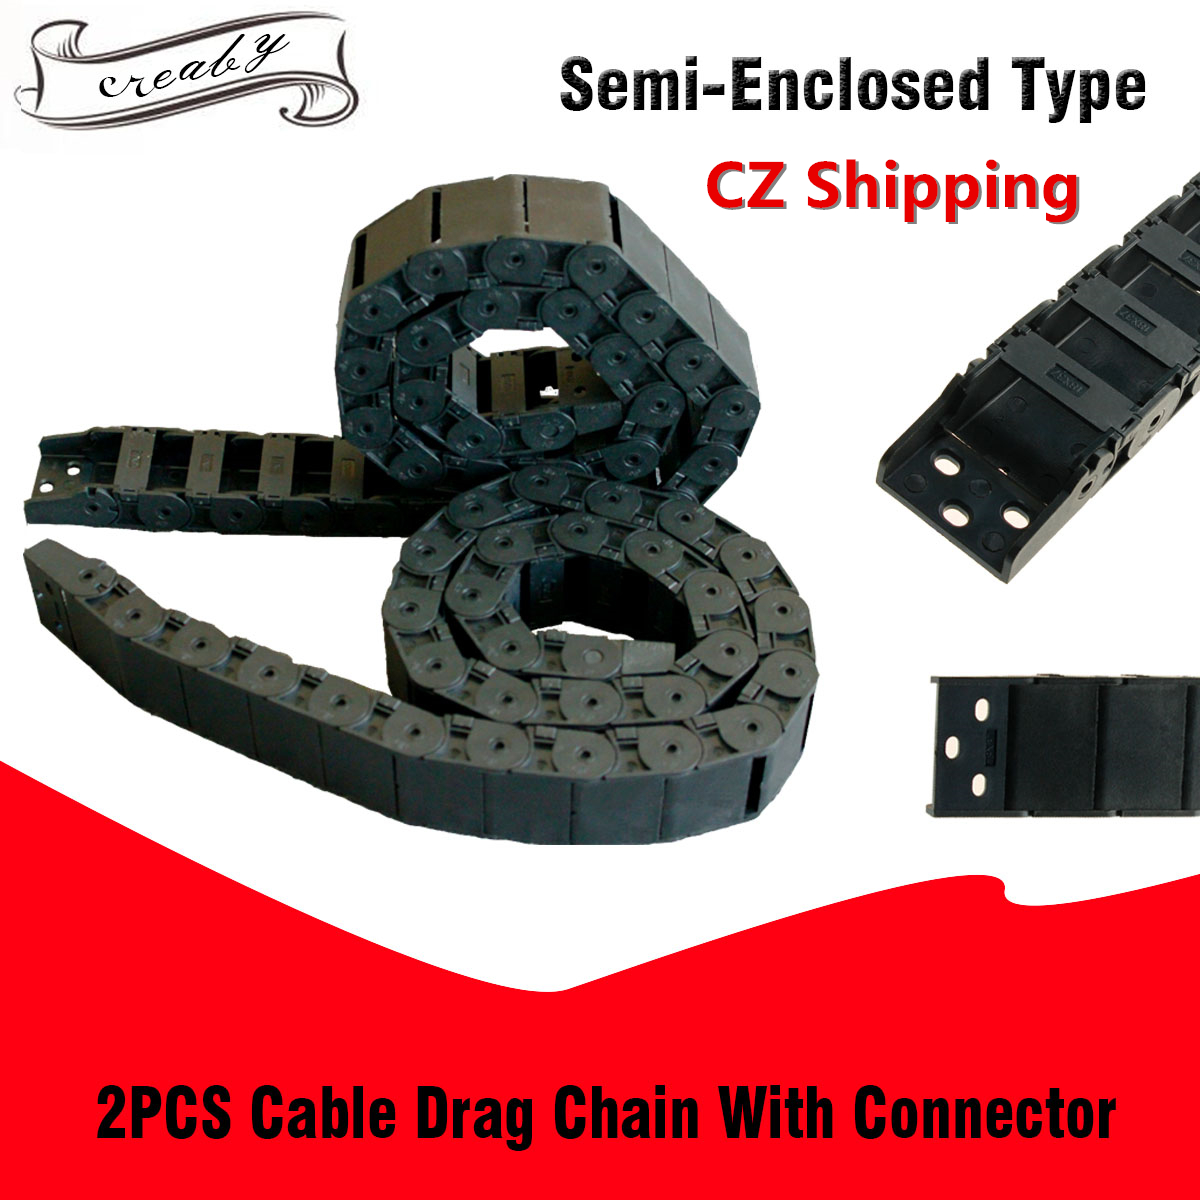 uxcell Drag Chain End Connector for 7x7mm Cable Carrier Chain Drag Chain Joints 10 Sets